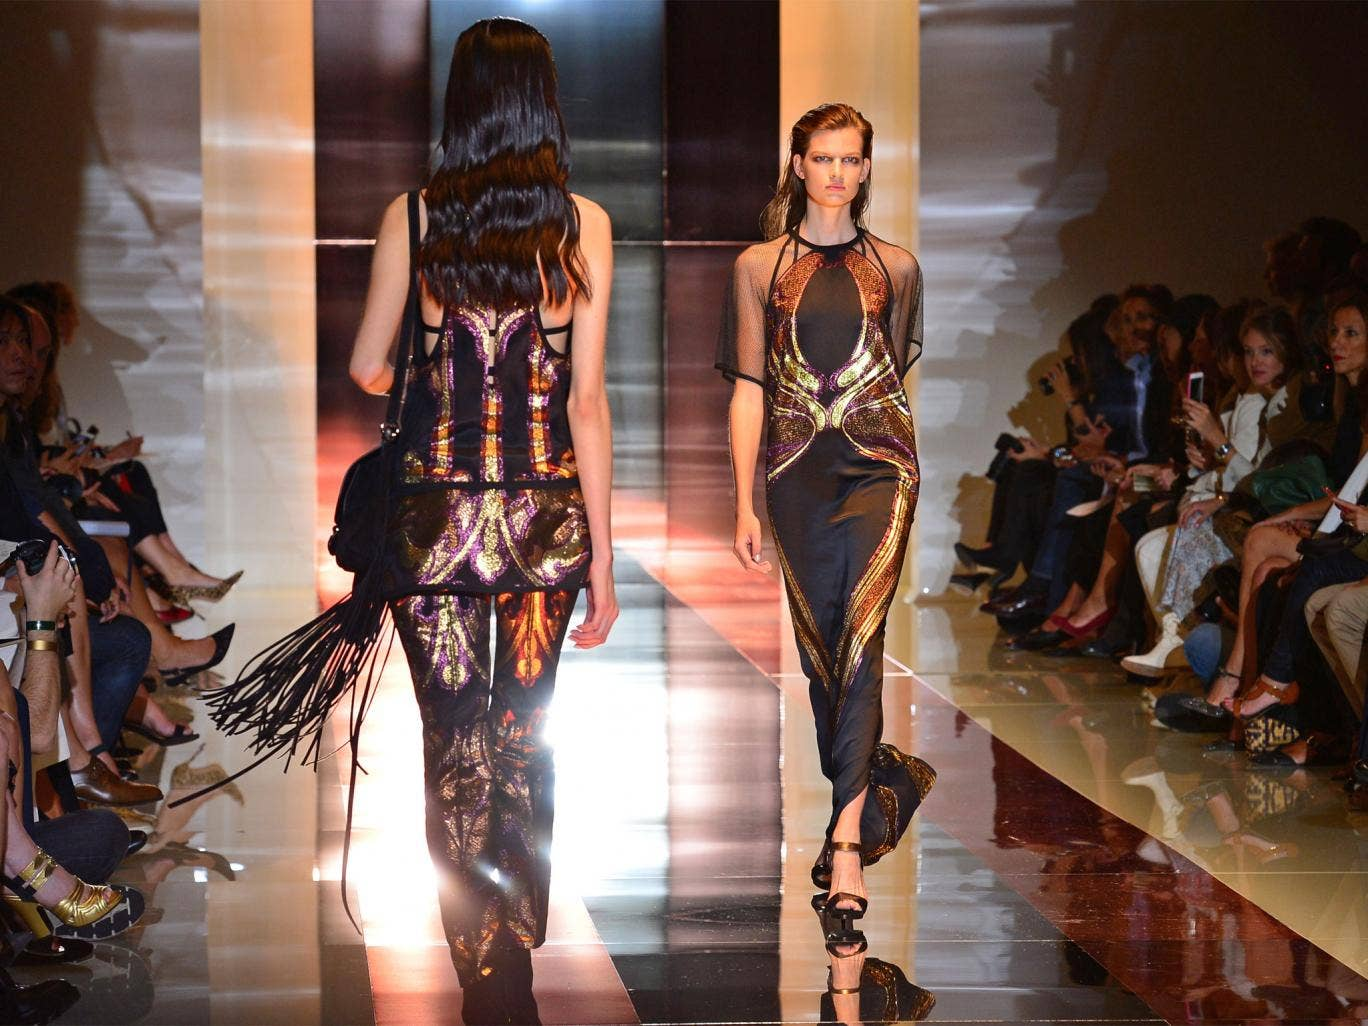 Models present creations for fashion house Gucci as part of the spring/summer 2014 ready-to-wear collections